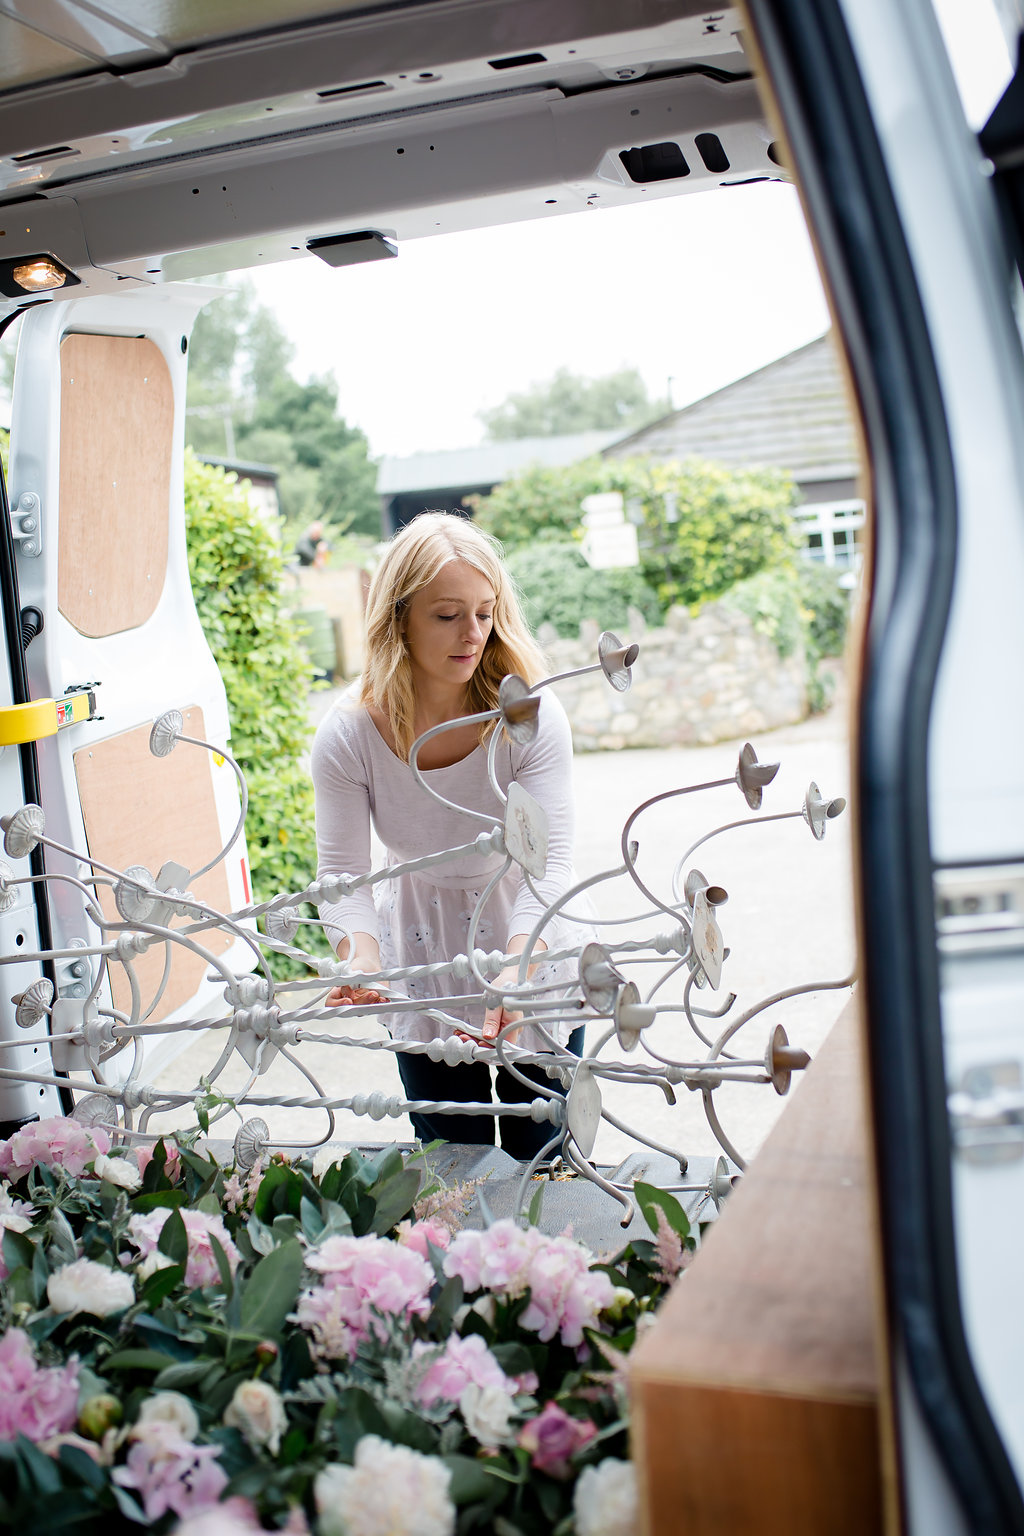 wedding florist loading flowers into van